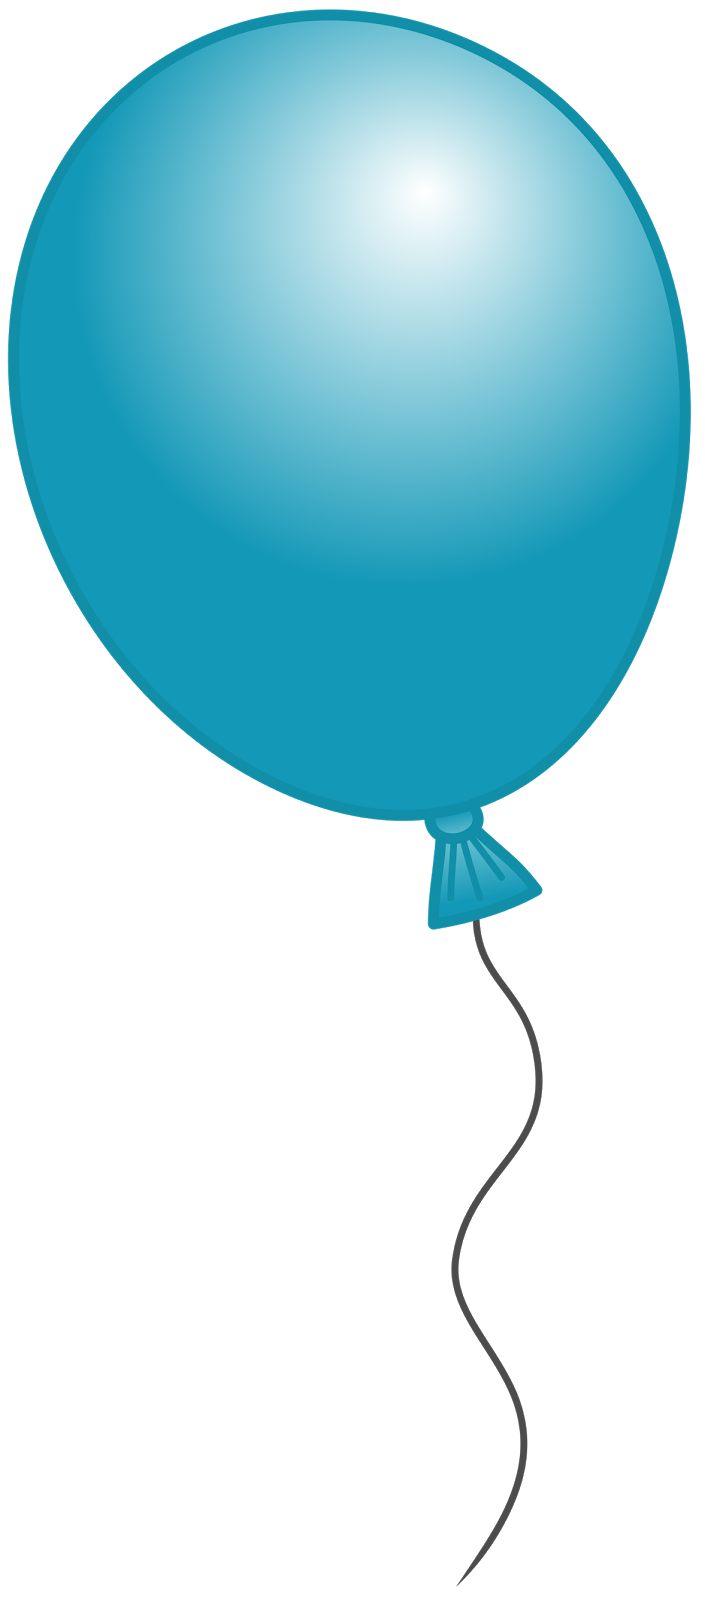 Dark Blue clipart balloon Dark Clipart balloon%20clipart Panda Clipart